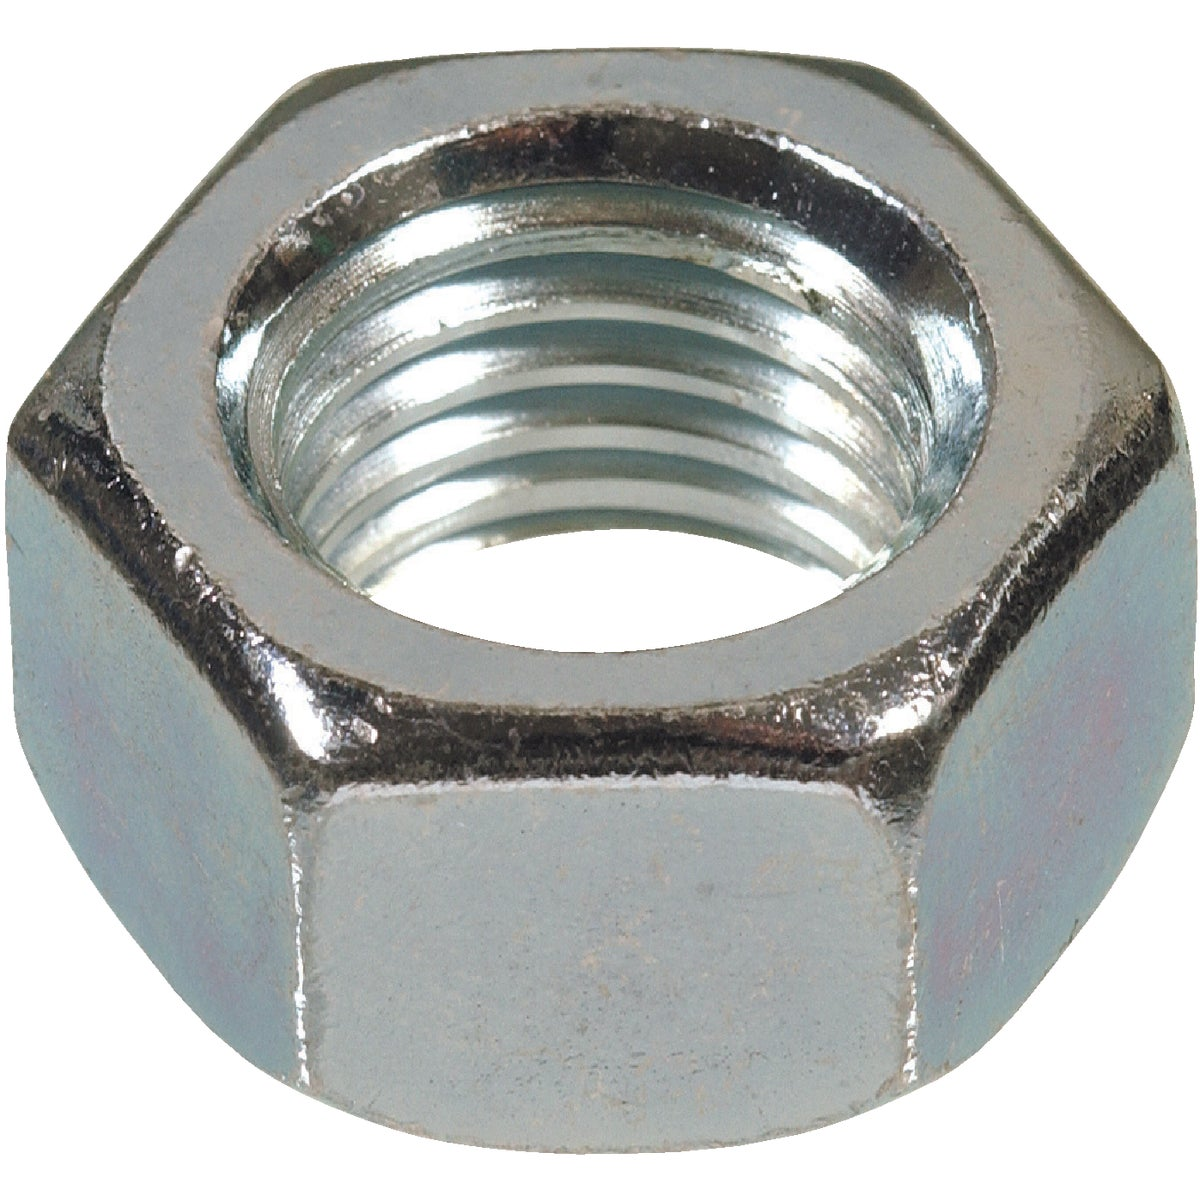 1/2-13 C THREAD HEX NUT